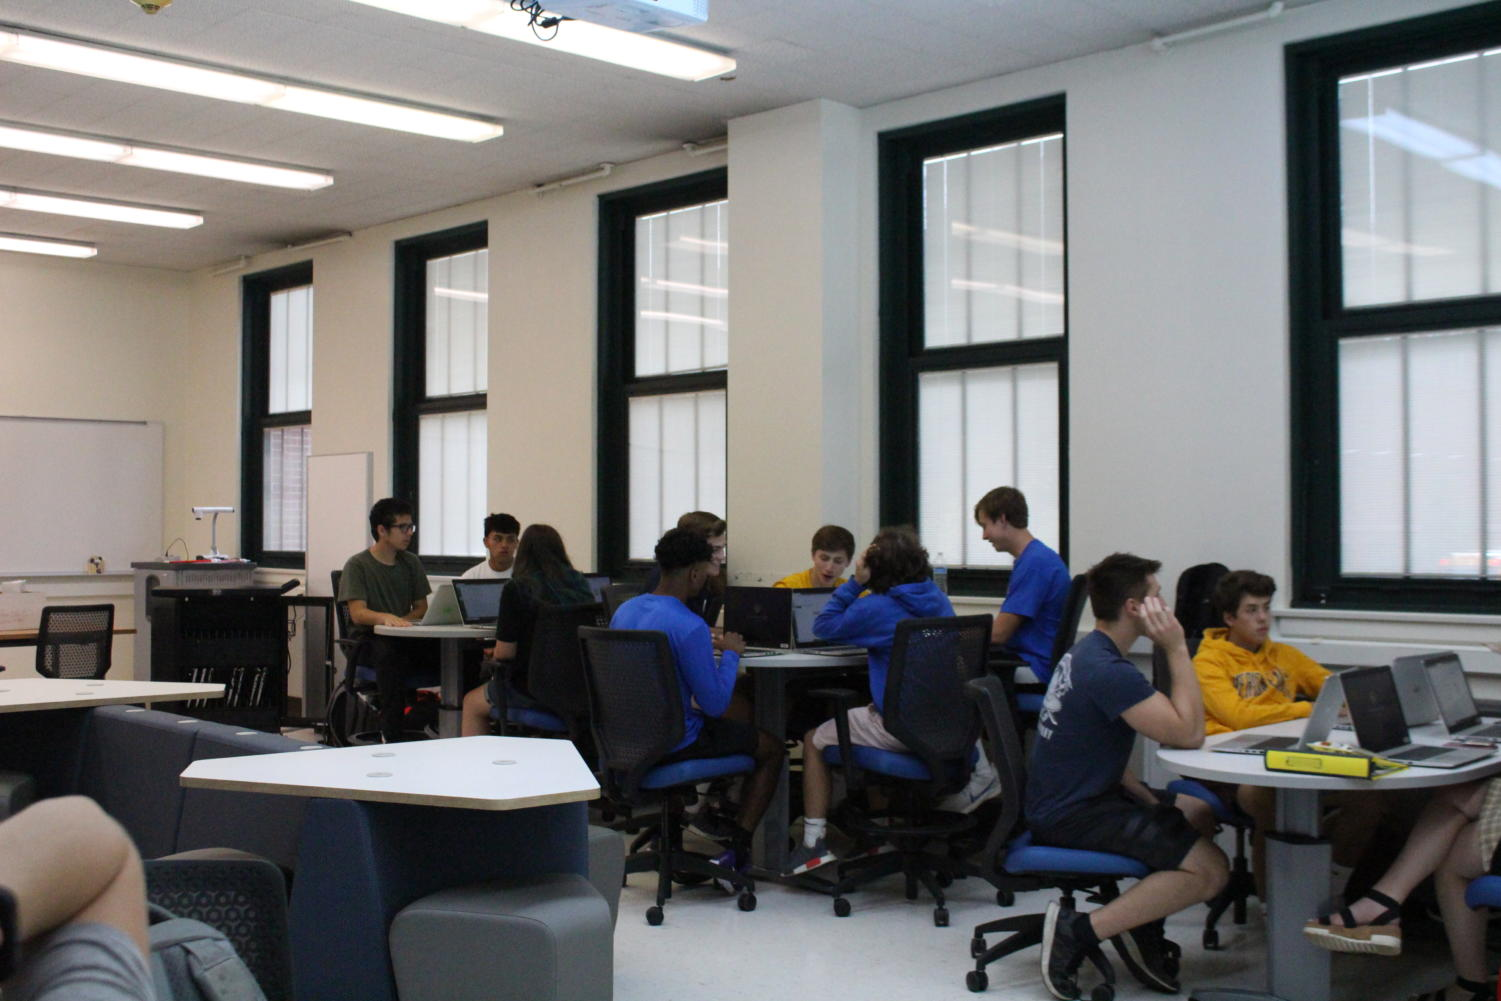 The classroom is set up to be more similar to a business environment rather than a classroom (Joyner/LION).